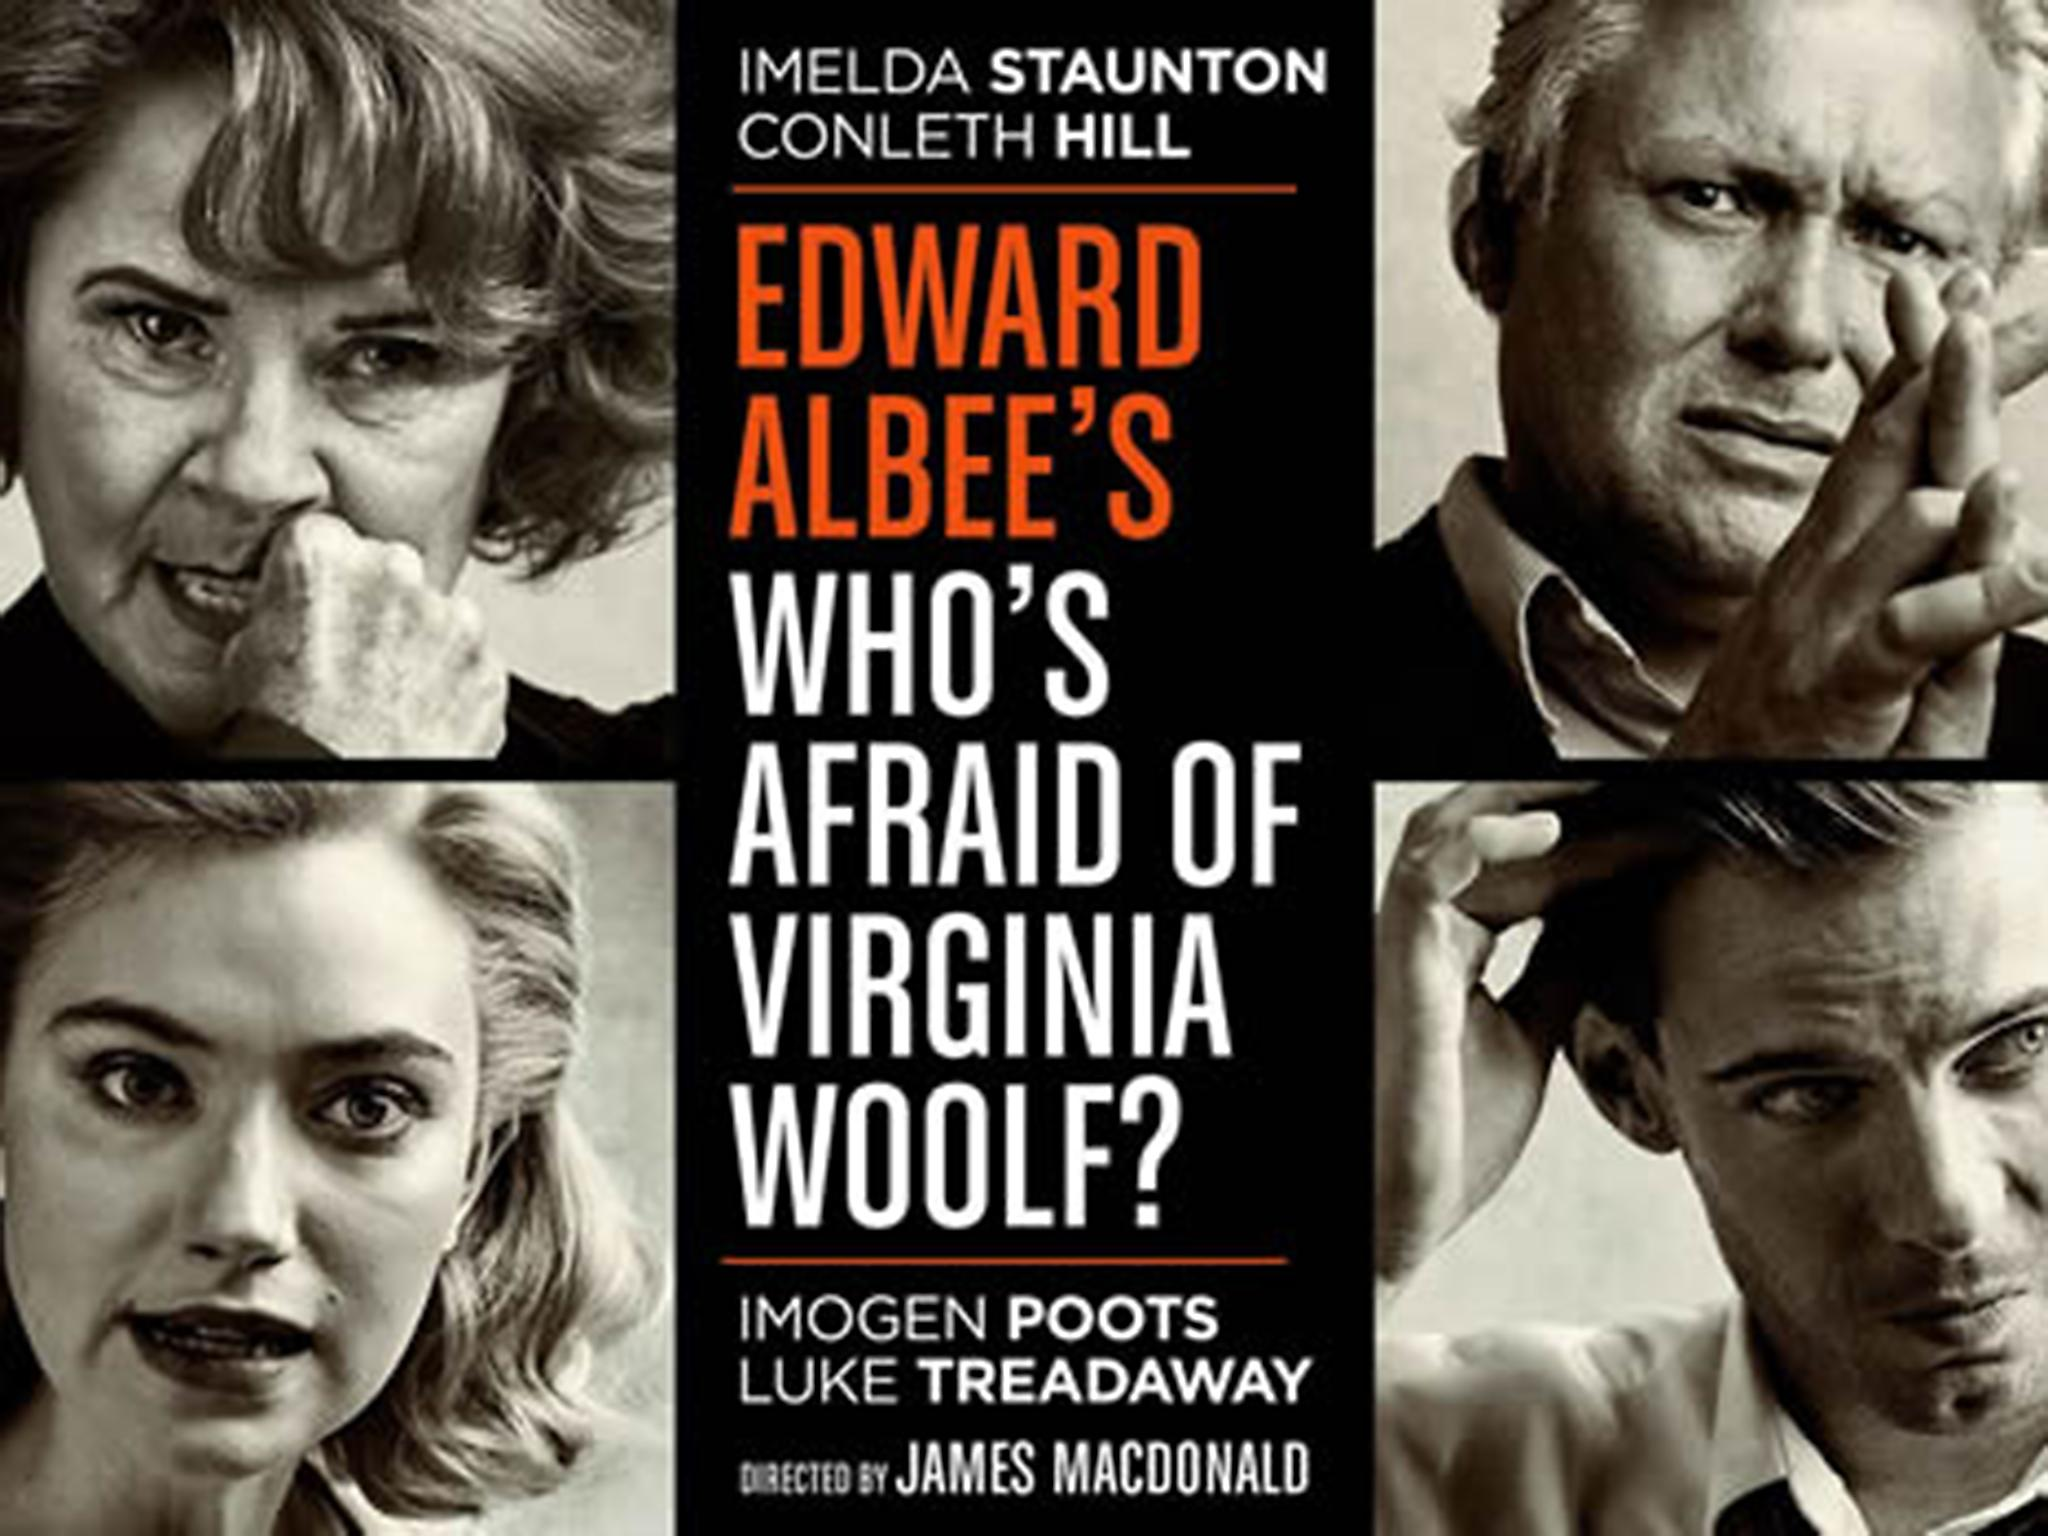 a review of edward albees whos afraid of virginia woolf We don't have the tradition of the alan smithee credit in the theatre if we did, this production of edward albee's who's afraid of virginia woolf would probably deserve one.